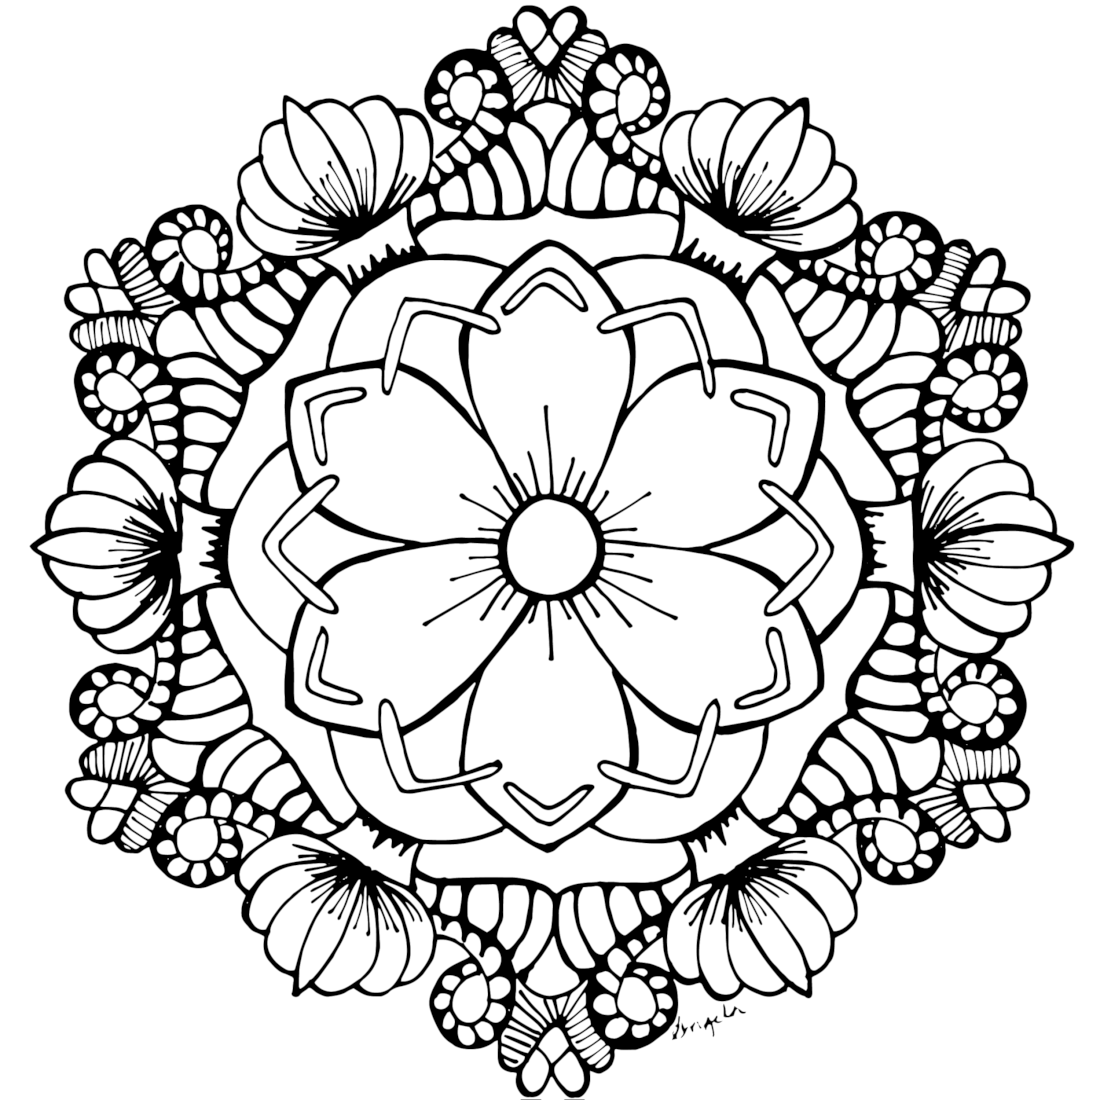 free flower coloring pages for adults very detailed flowers coloring pages for adults hard to adults pages flower coloring for free